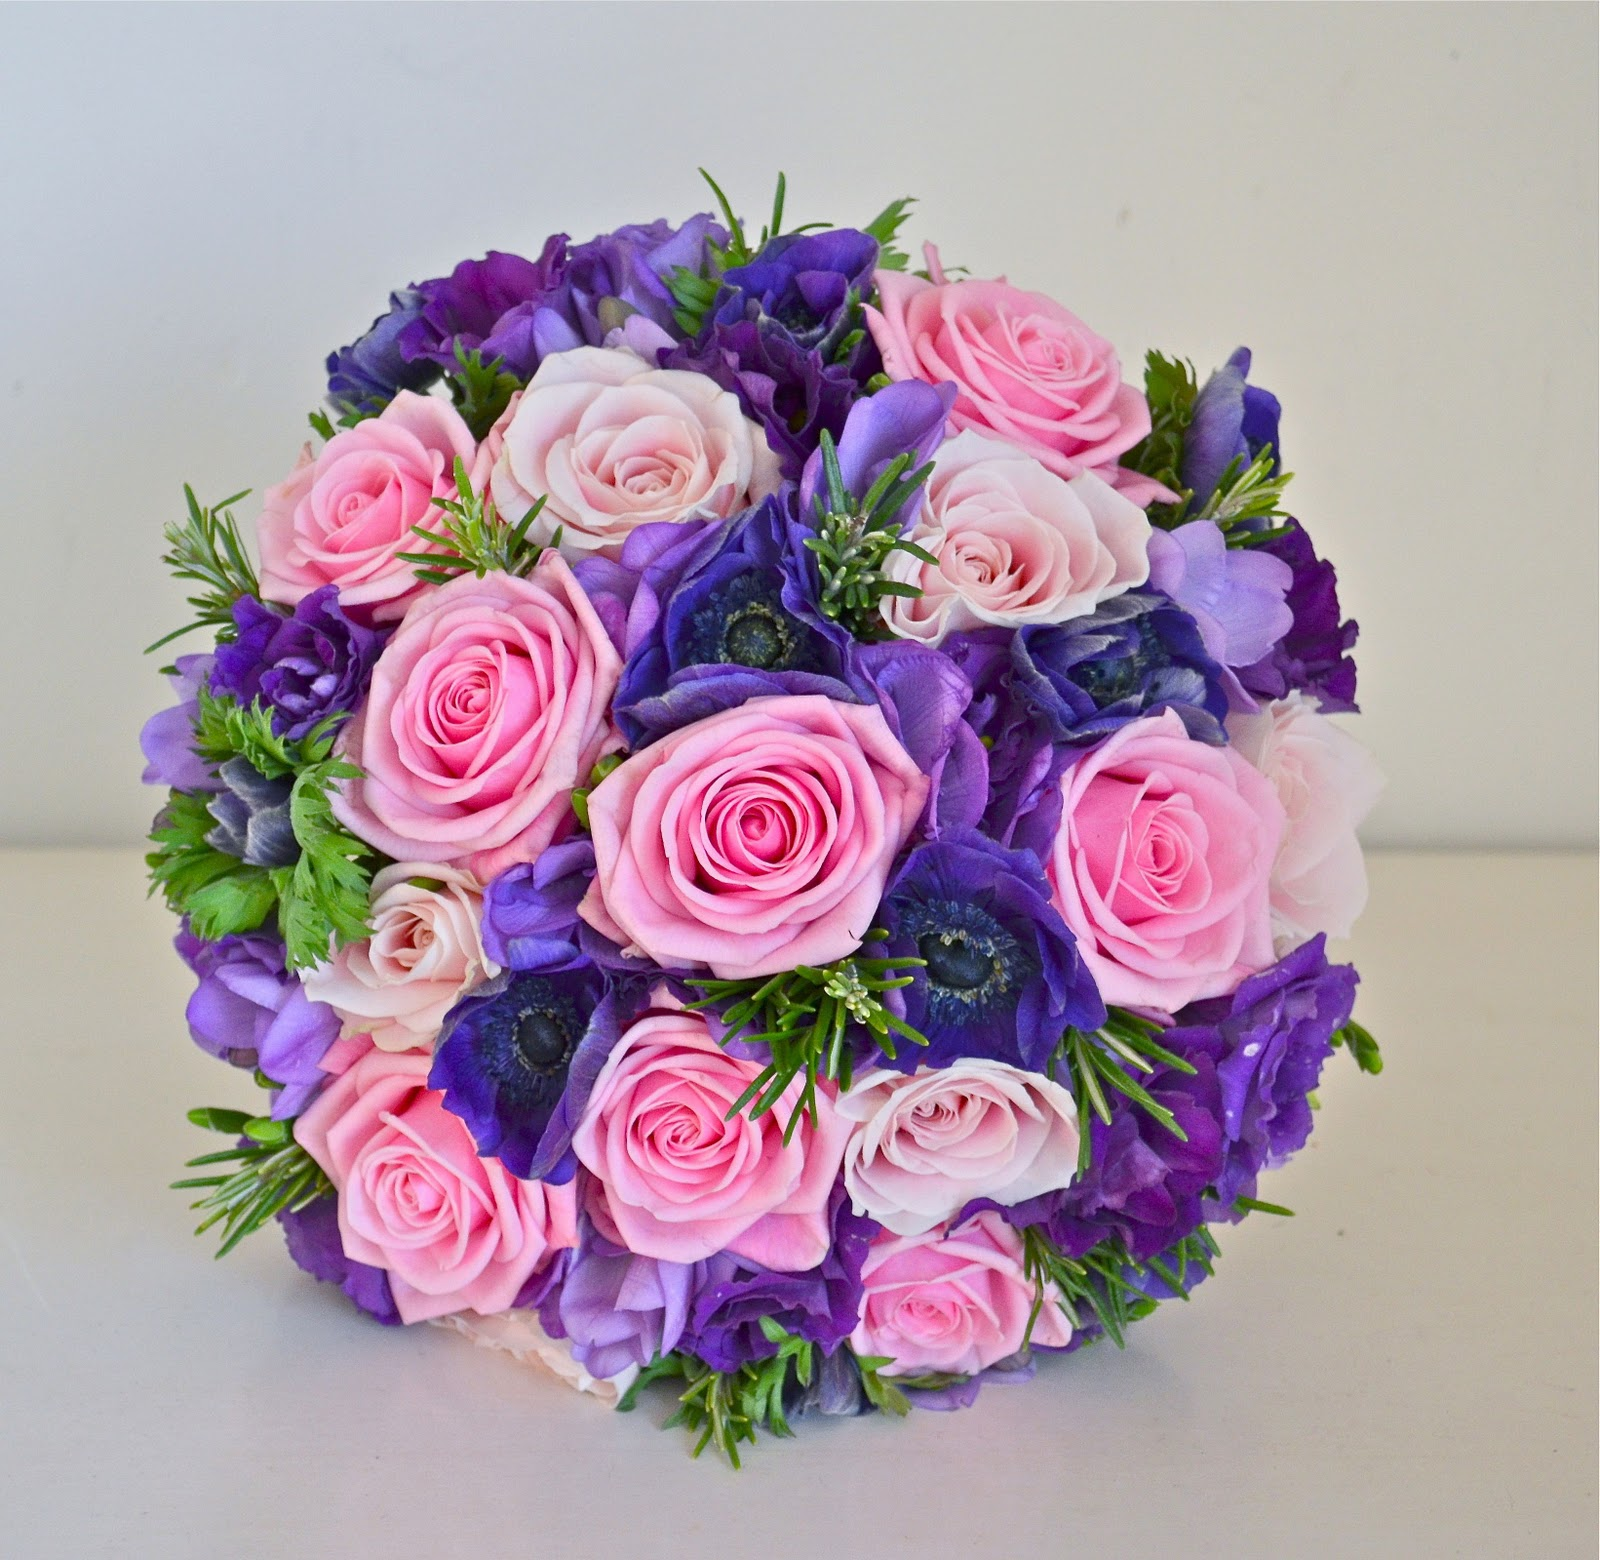 wedding bouquet with purple flowers - wedding flowers 2013